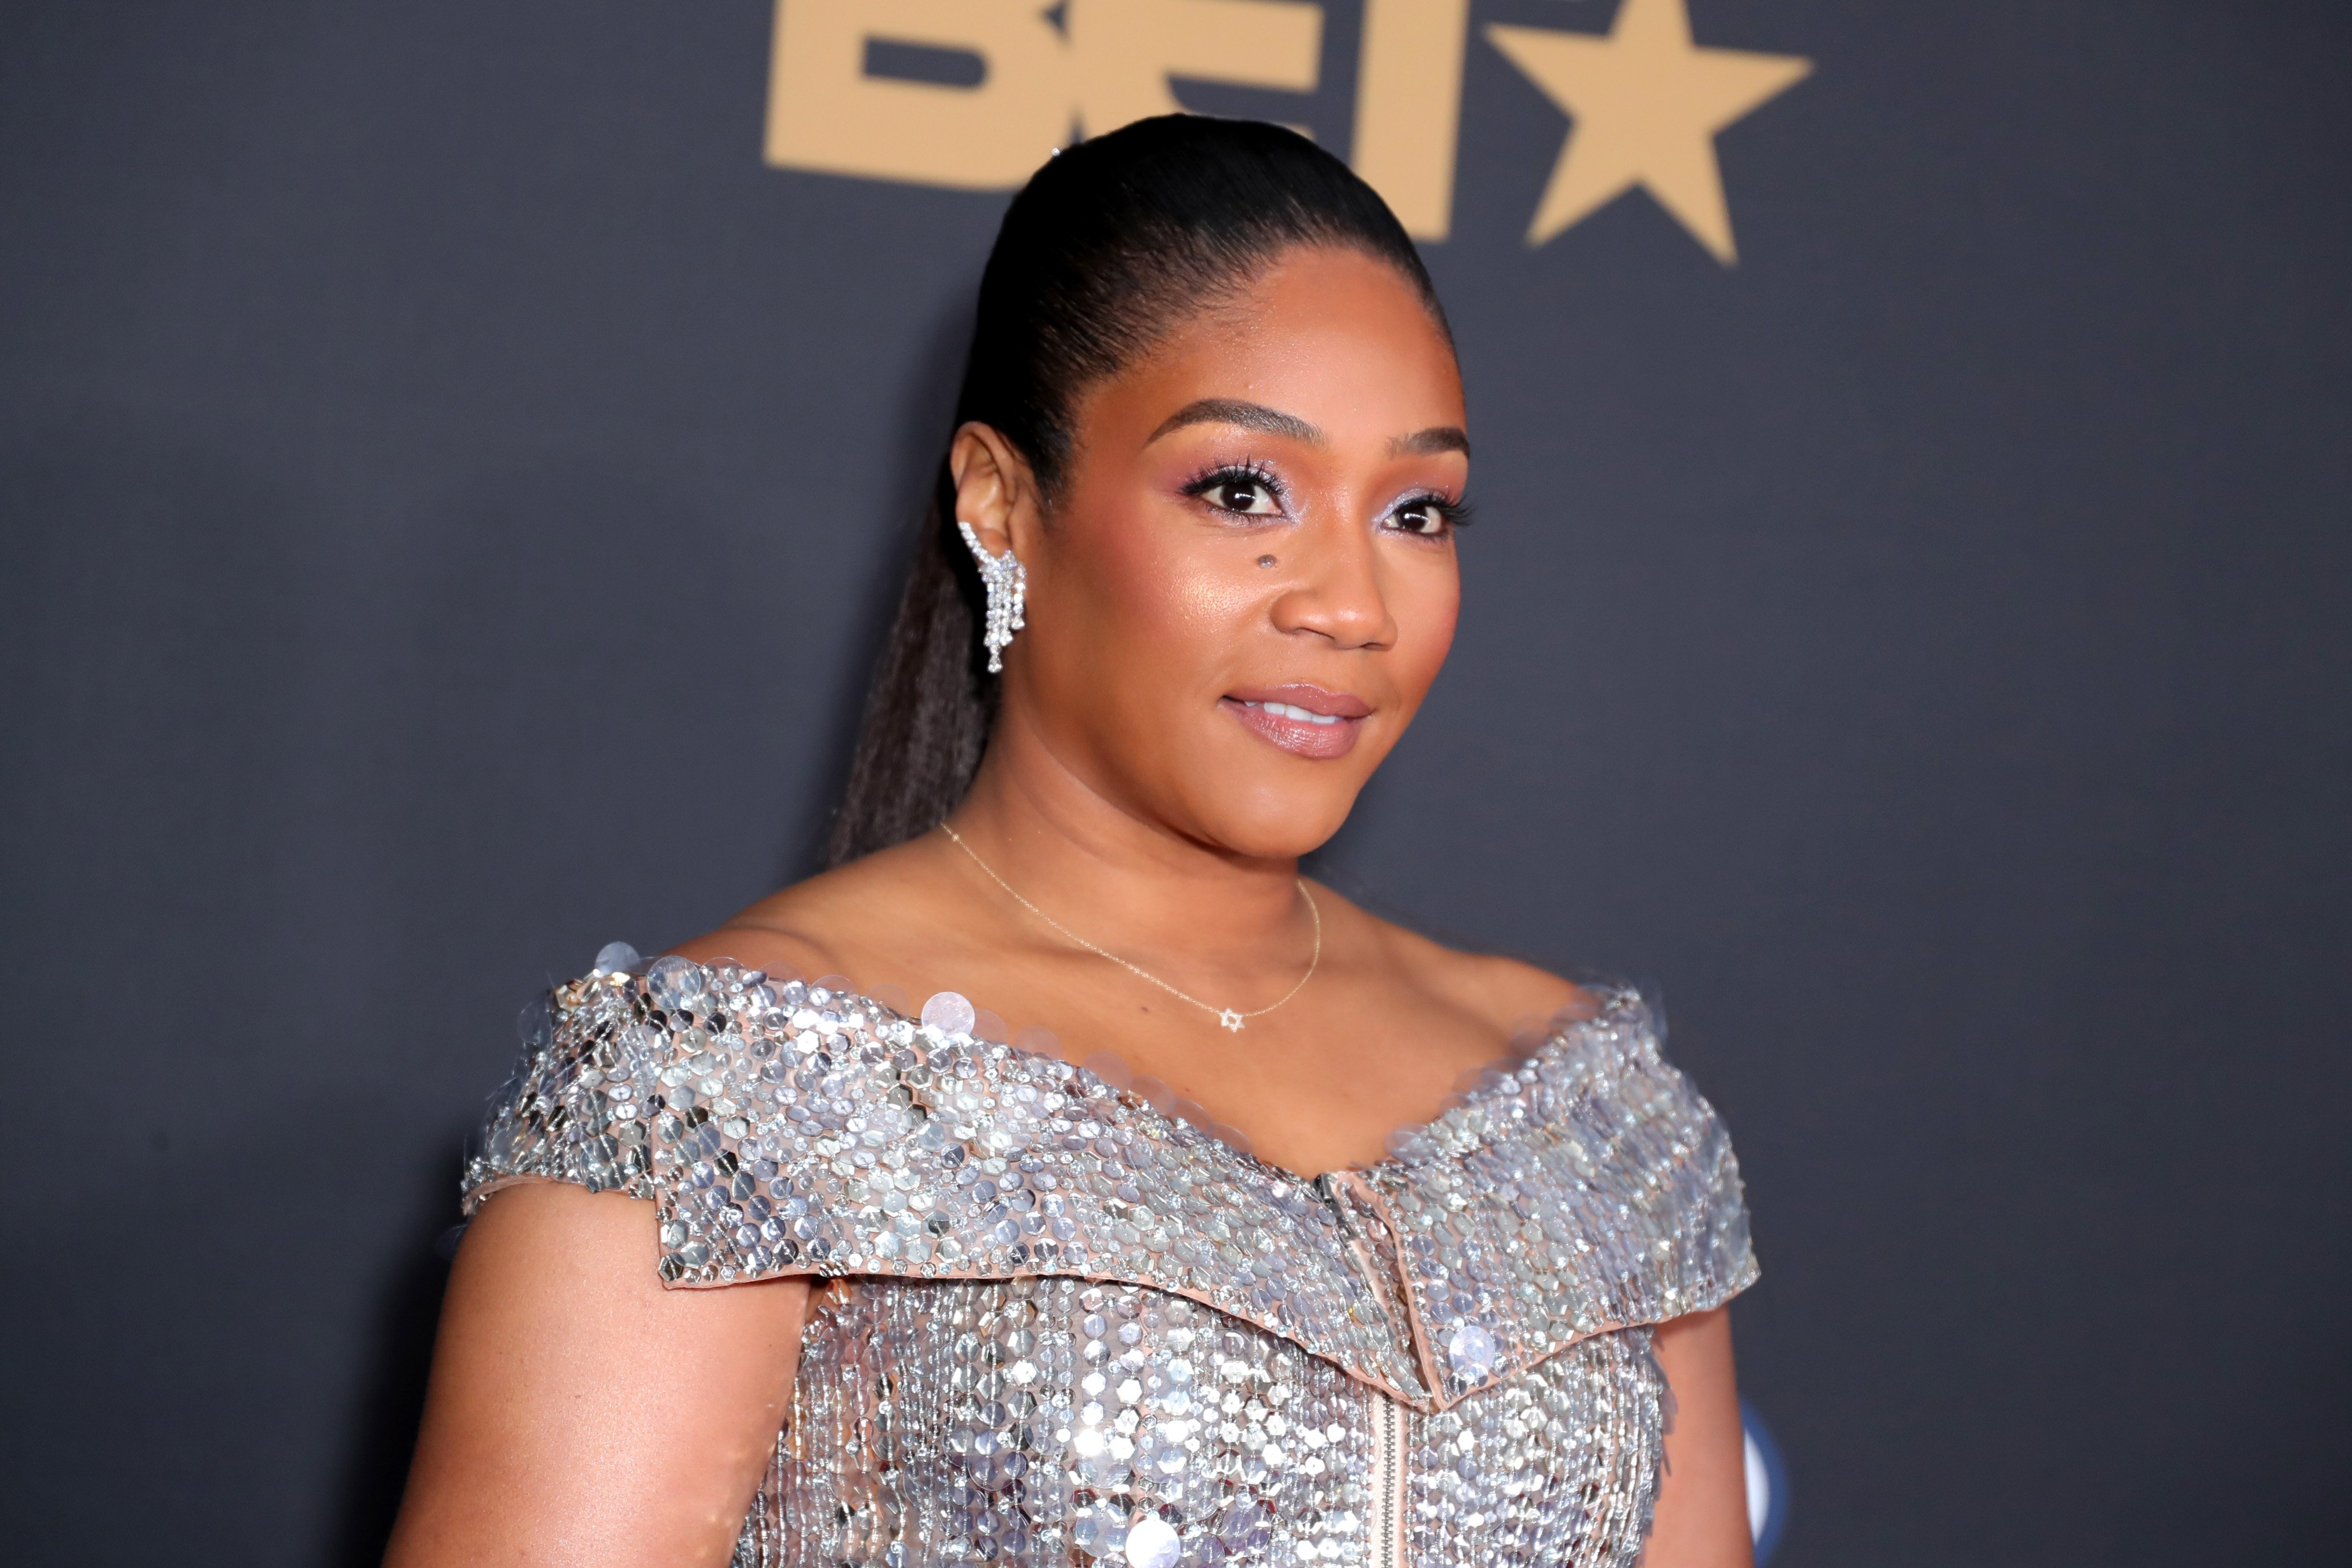 Tiffany Haddish at the 51st NAACP Image Awards on February 22, 2020 in Pasadena, California. | Source: Getty Images